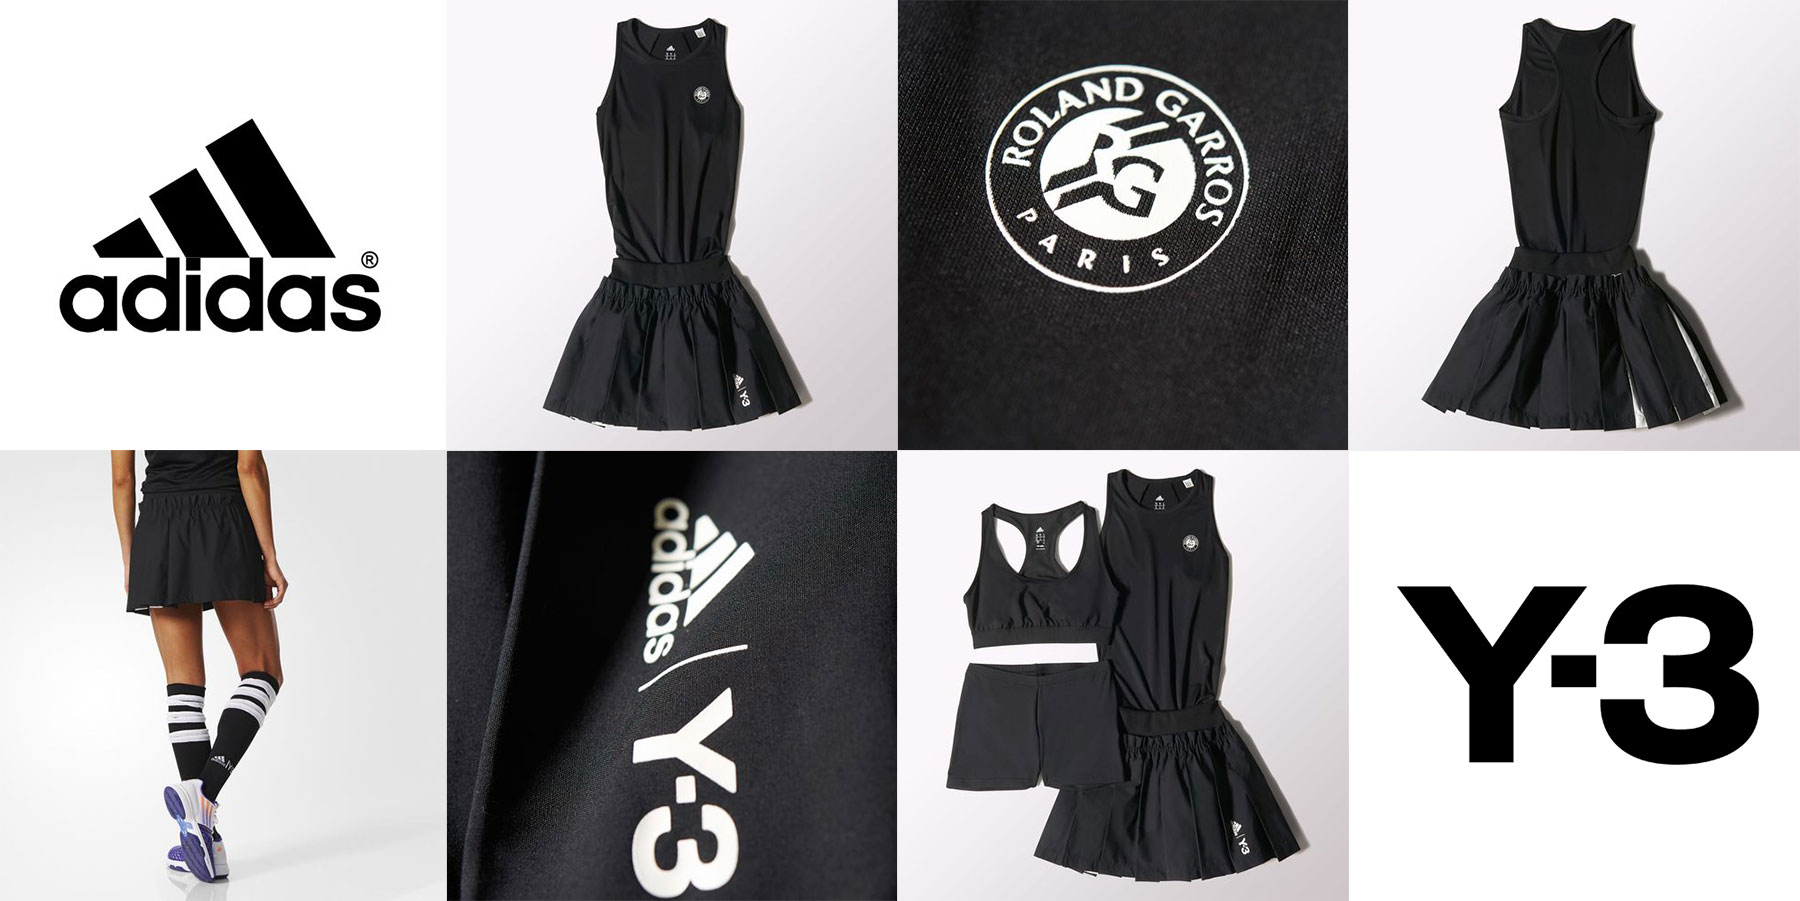 adidas Y 3 tennis Roland Garros uniforms